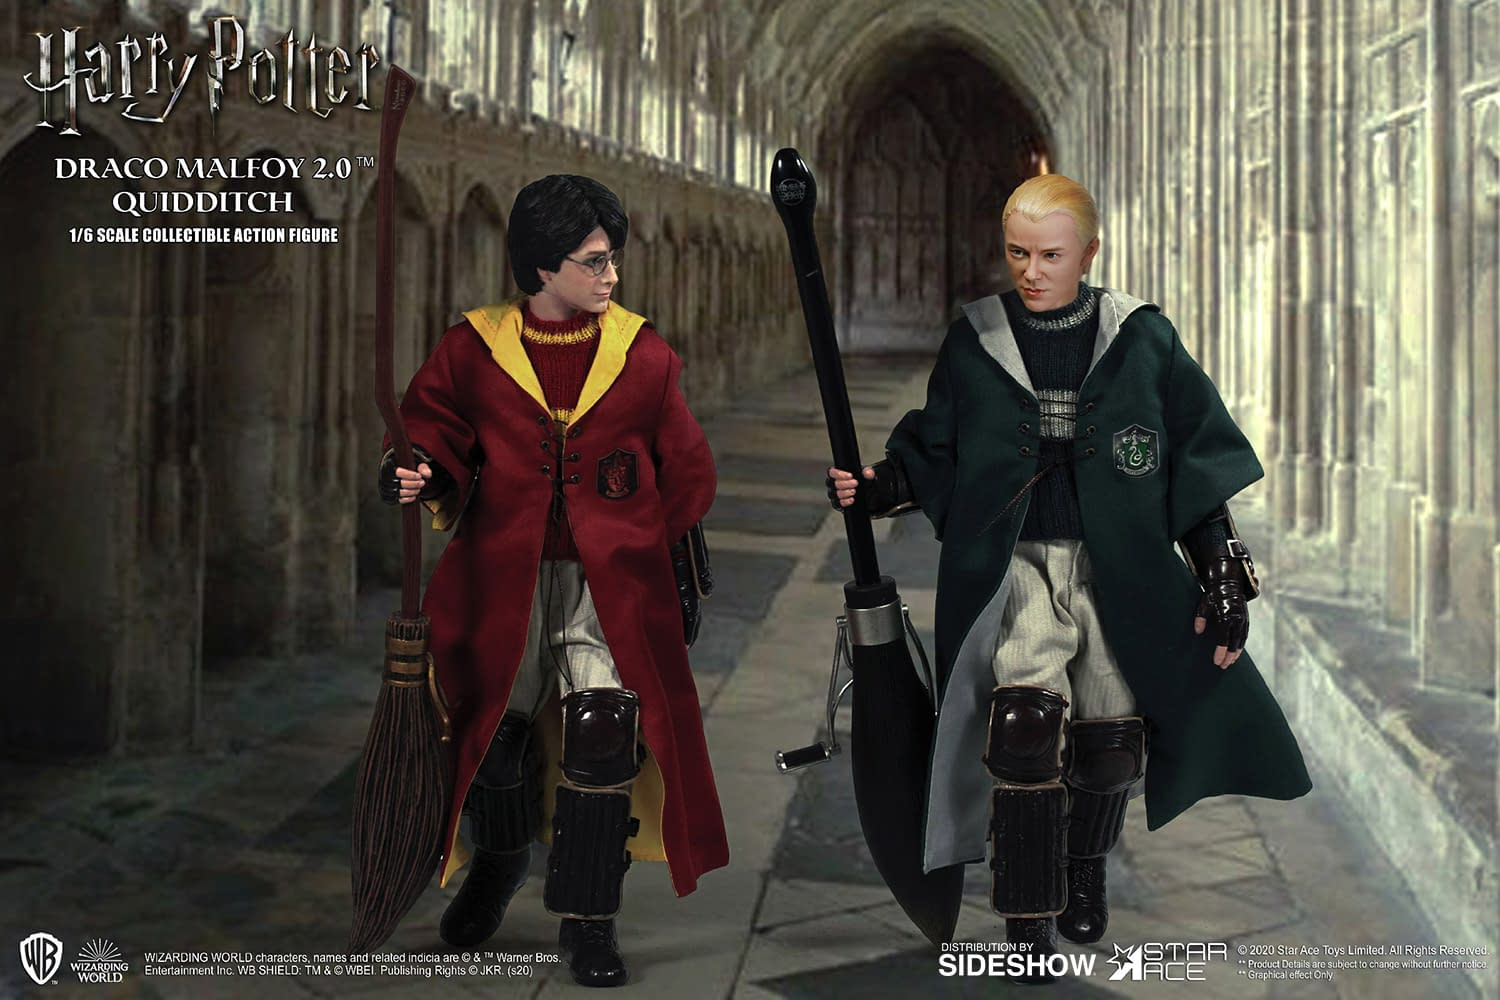 harry-potter-draco-malfoy-20-quidditch-twin-pack_harry-potter_gallery_5e83b2178a314